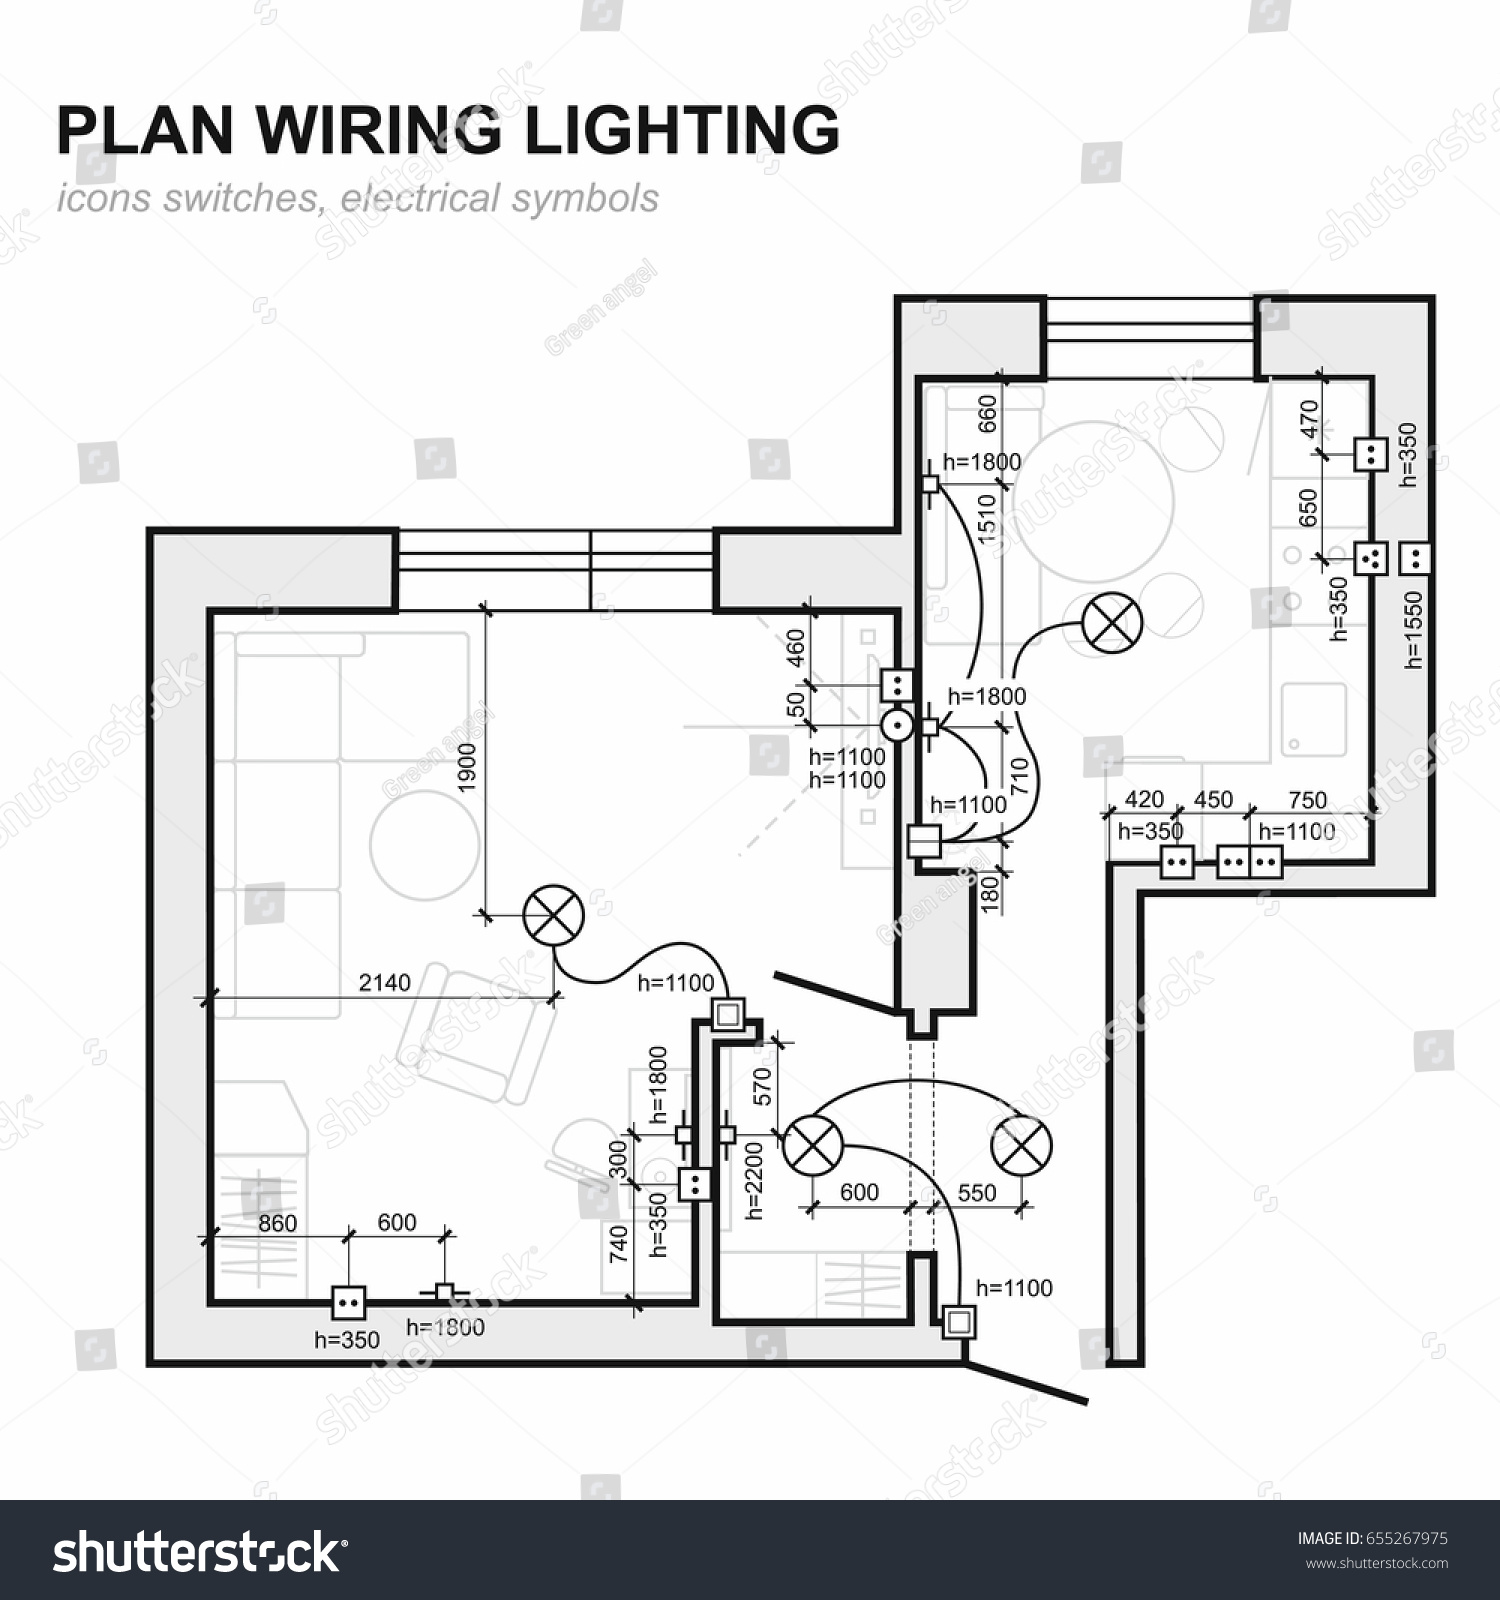 Plan Wiring Lighting Electrical Schematic Interior Stock Vector Schematics Set Of Standard Icons Switches Symbols